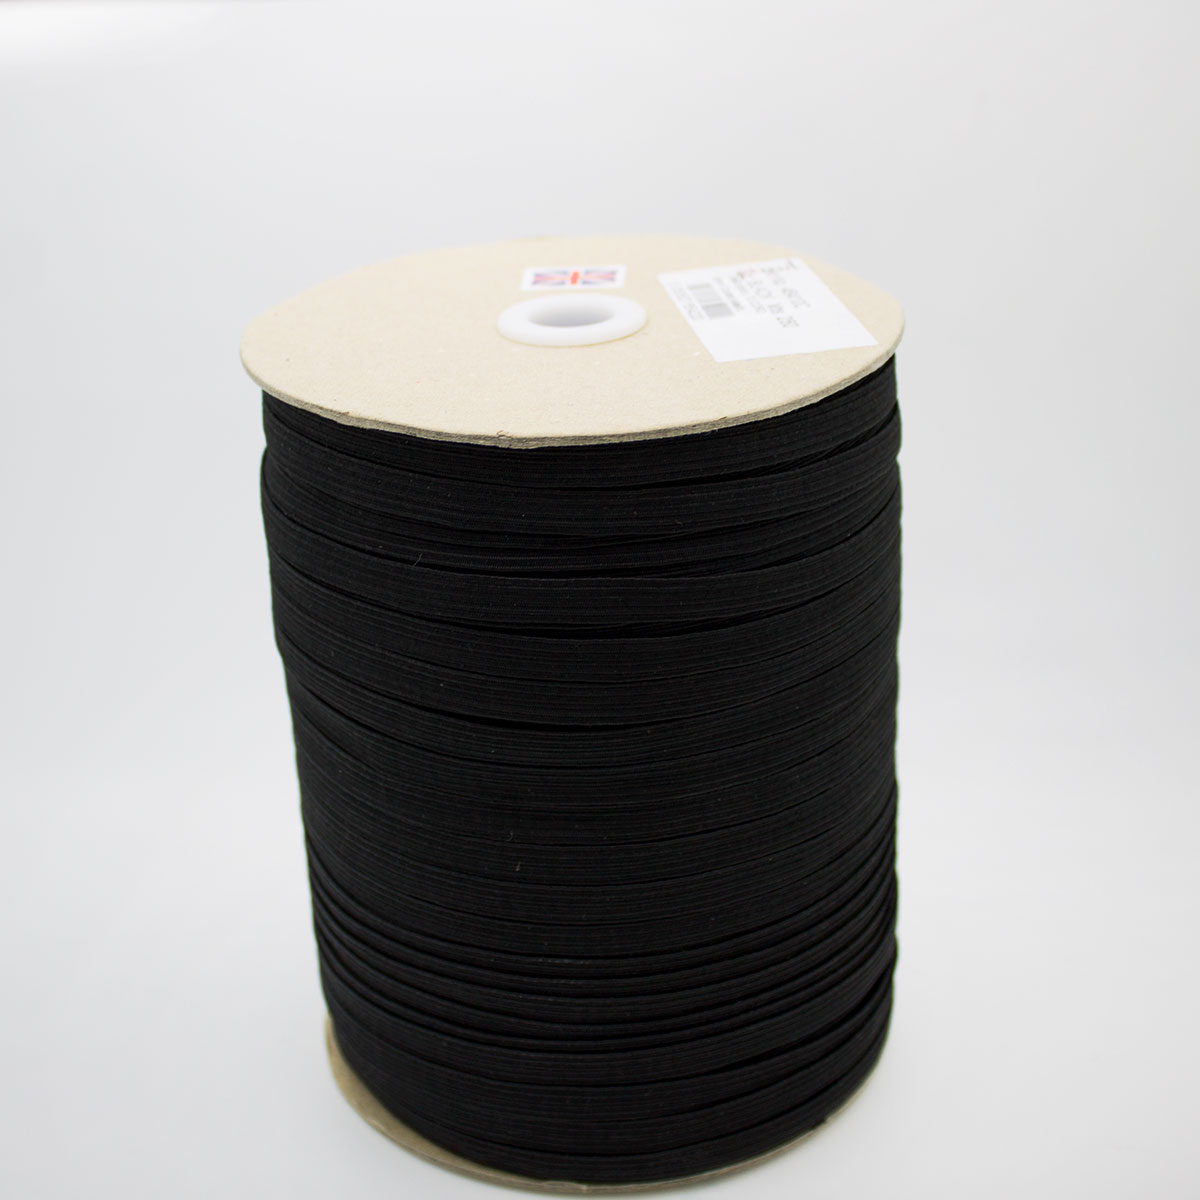 8mm 12 Cord Elastic Black